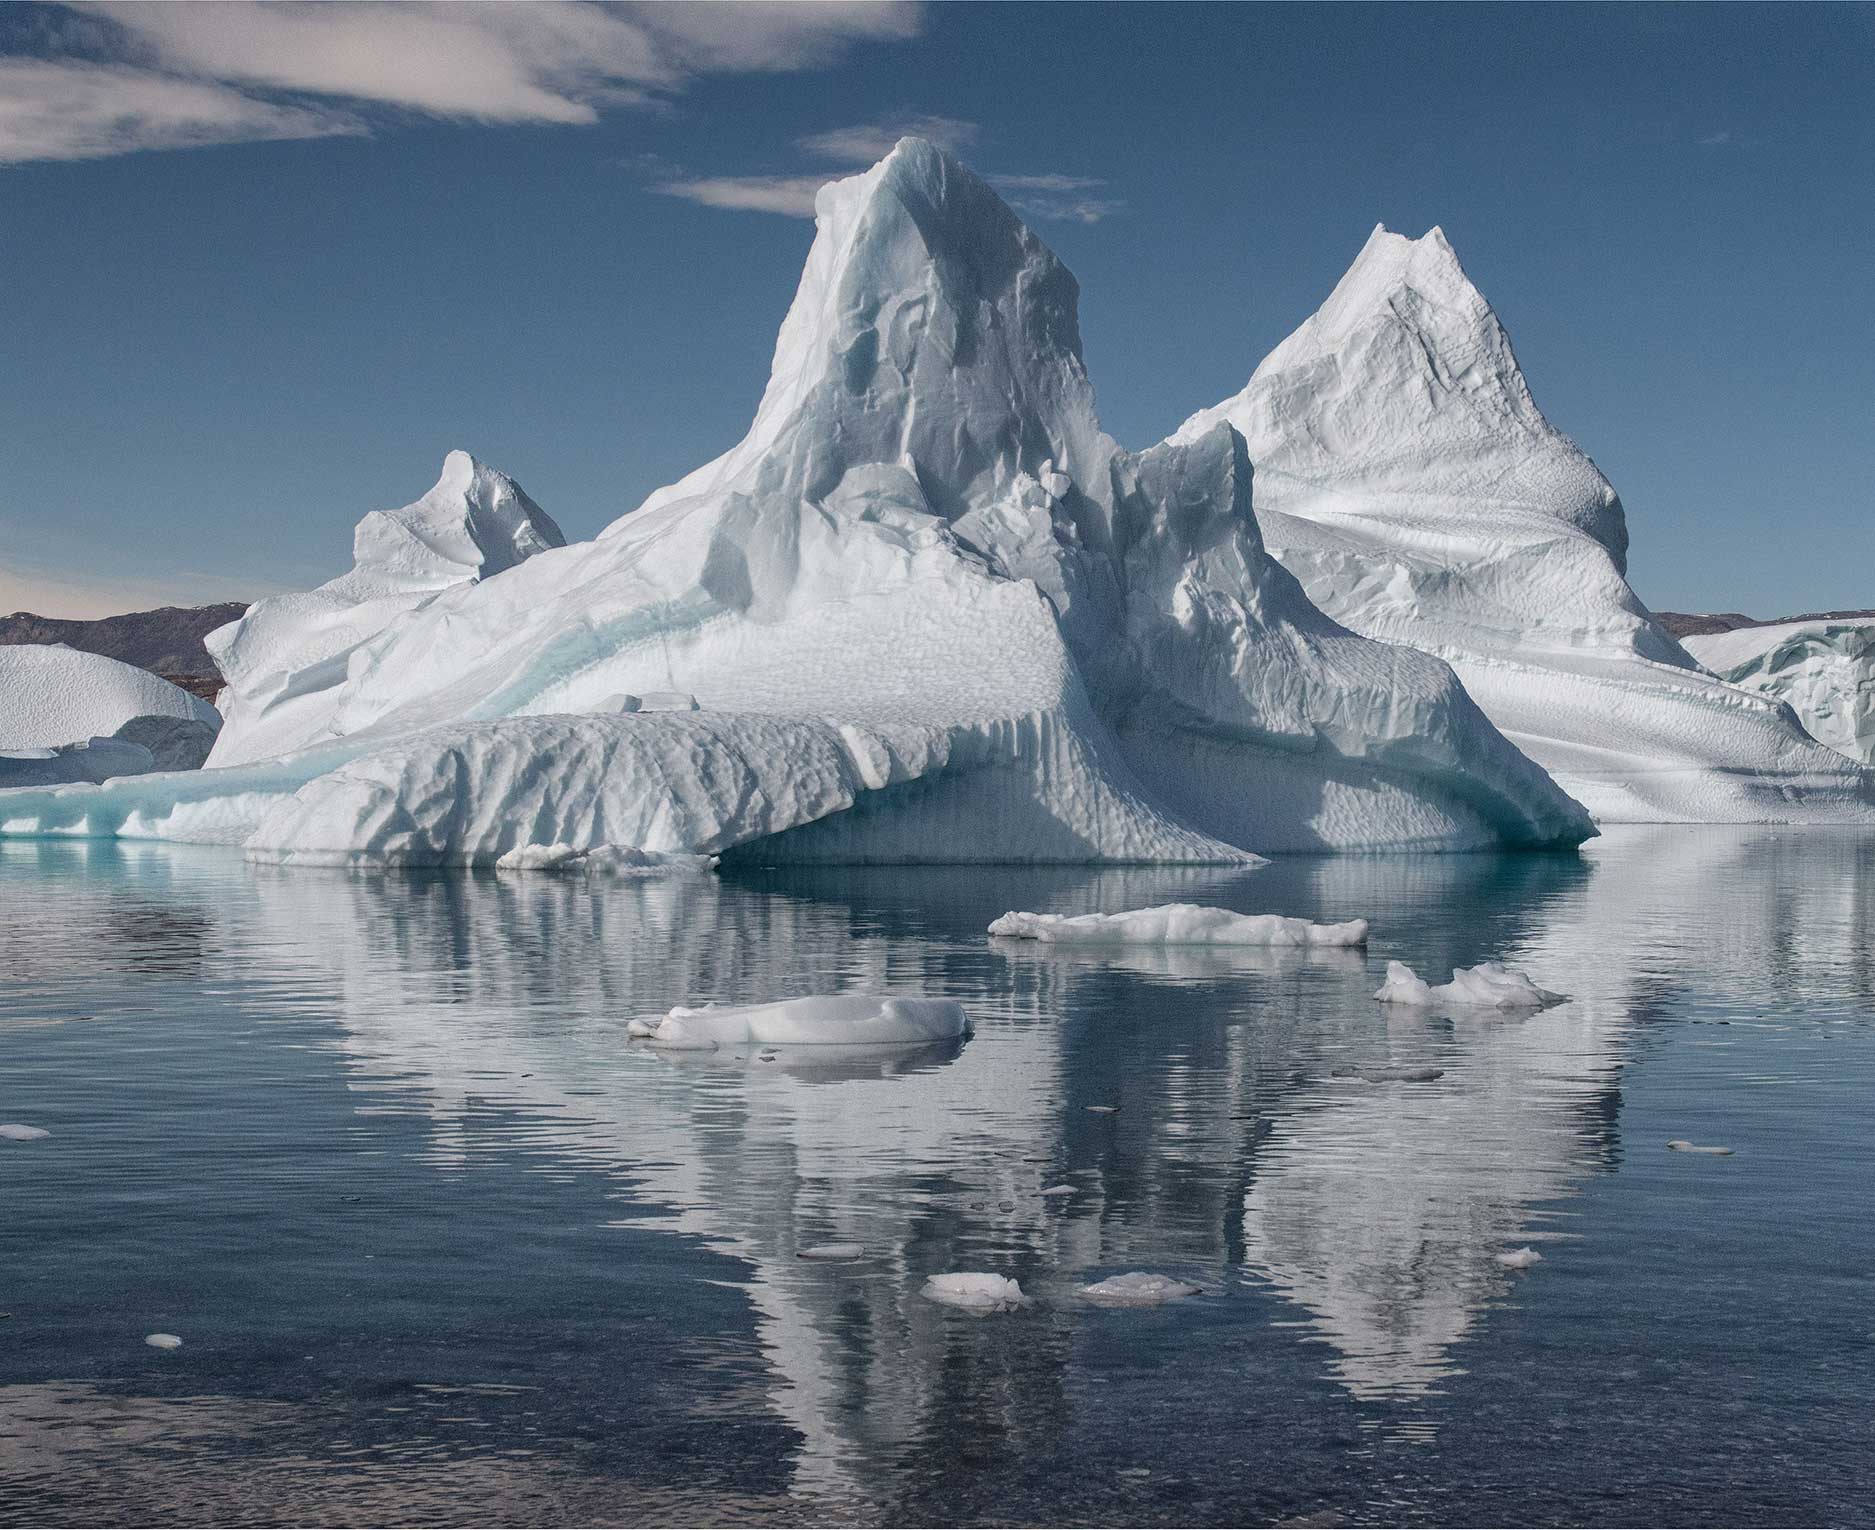 Greenland Ice Sculpture